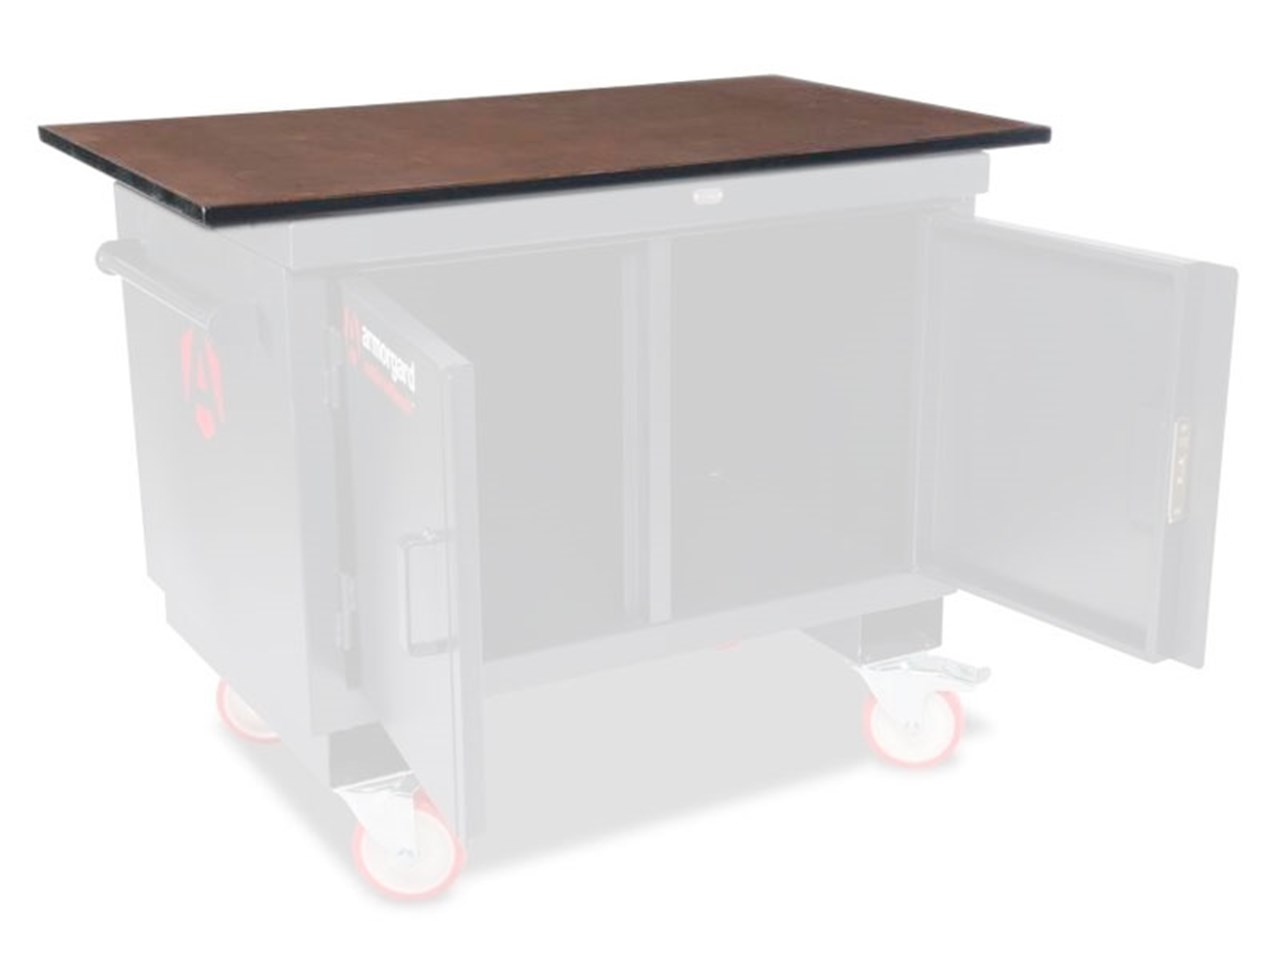 Armorgard Bh1270m W Wooden Worktop For Mobile Tuffbench